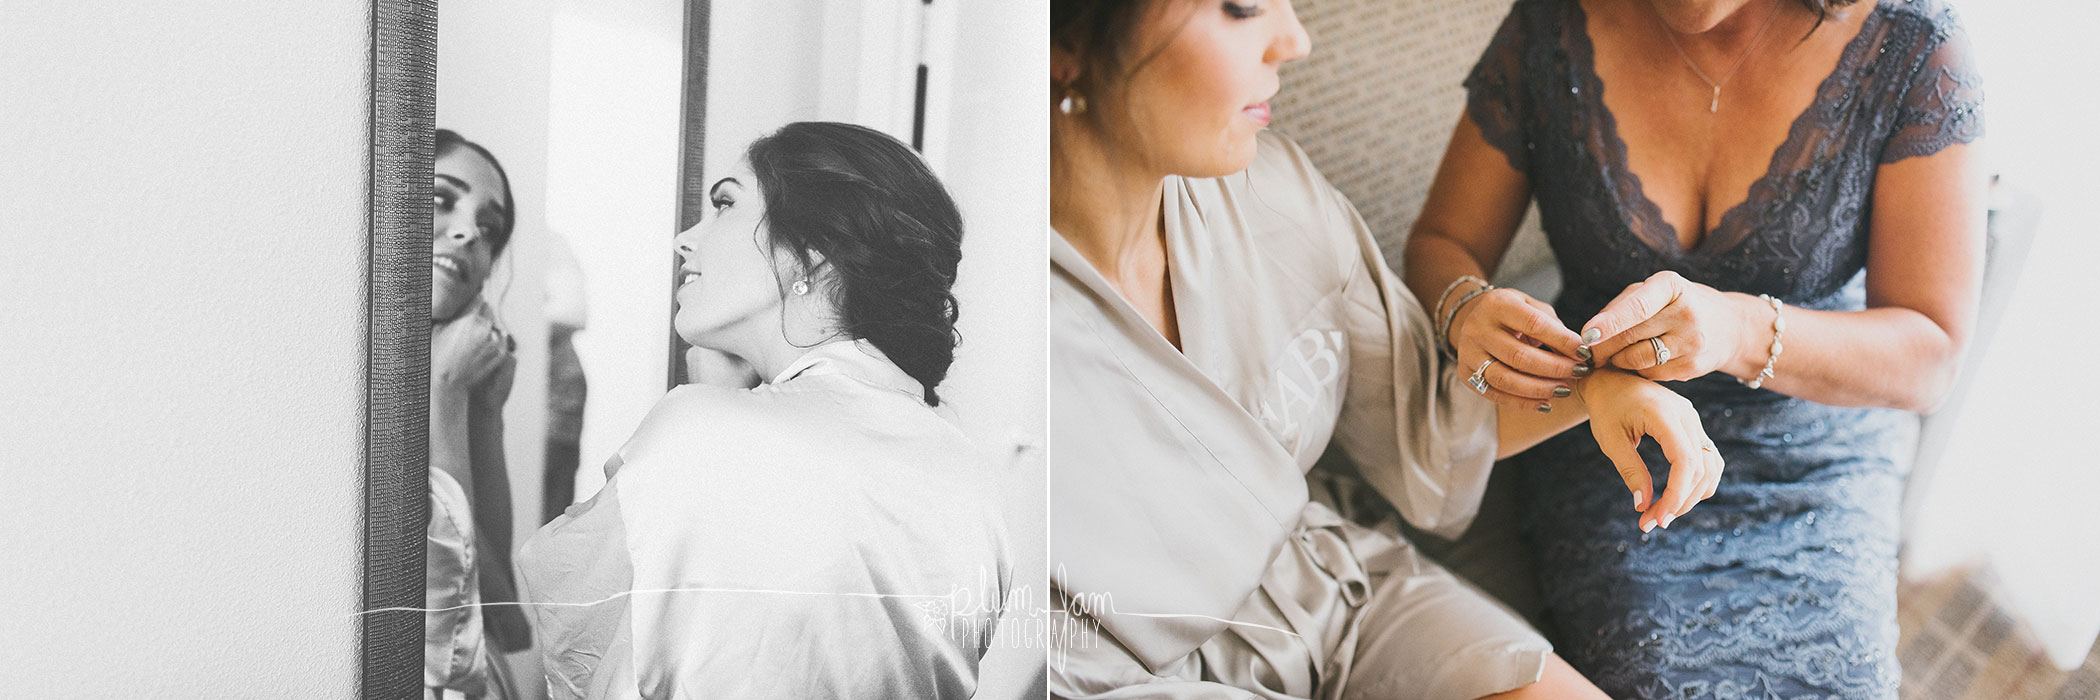 AllieRyanWedding-Blog03-PlumJamPhotography